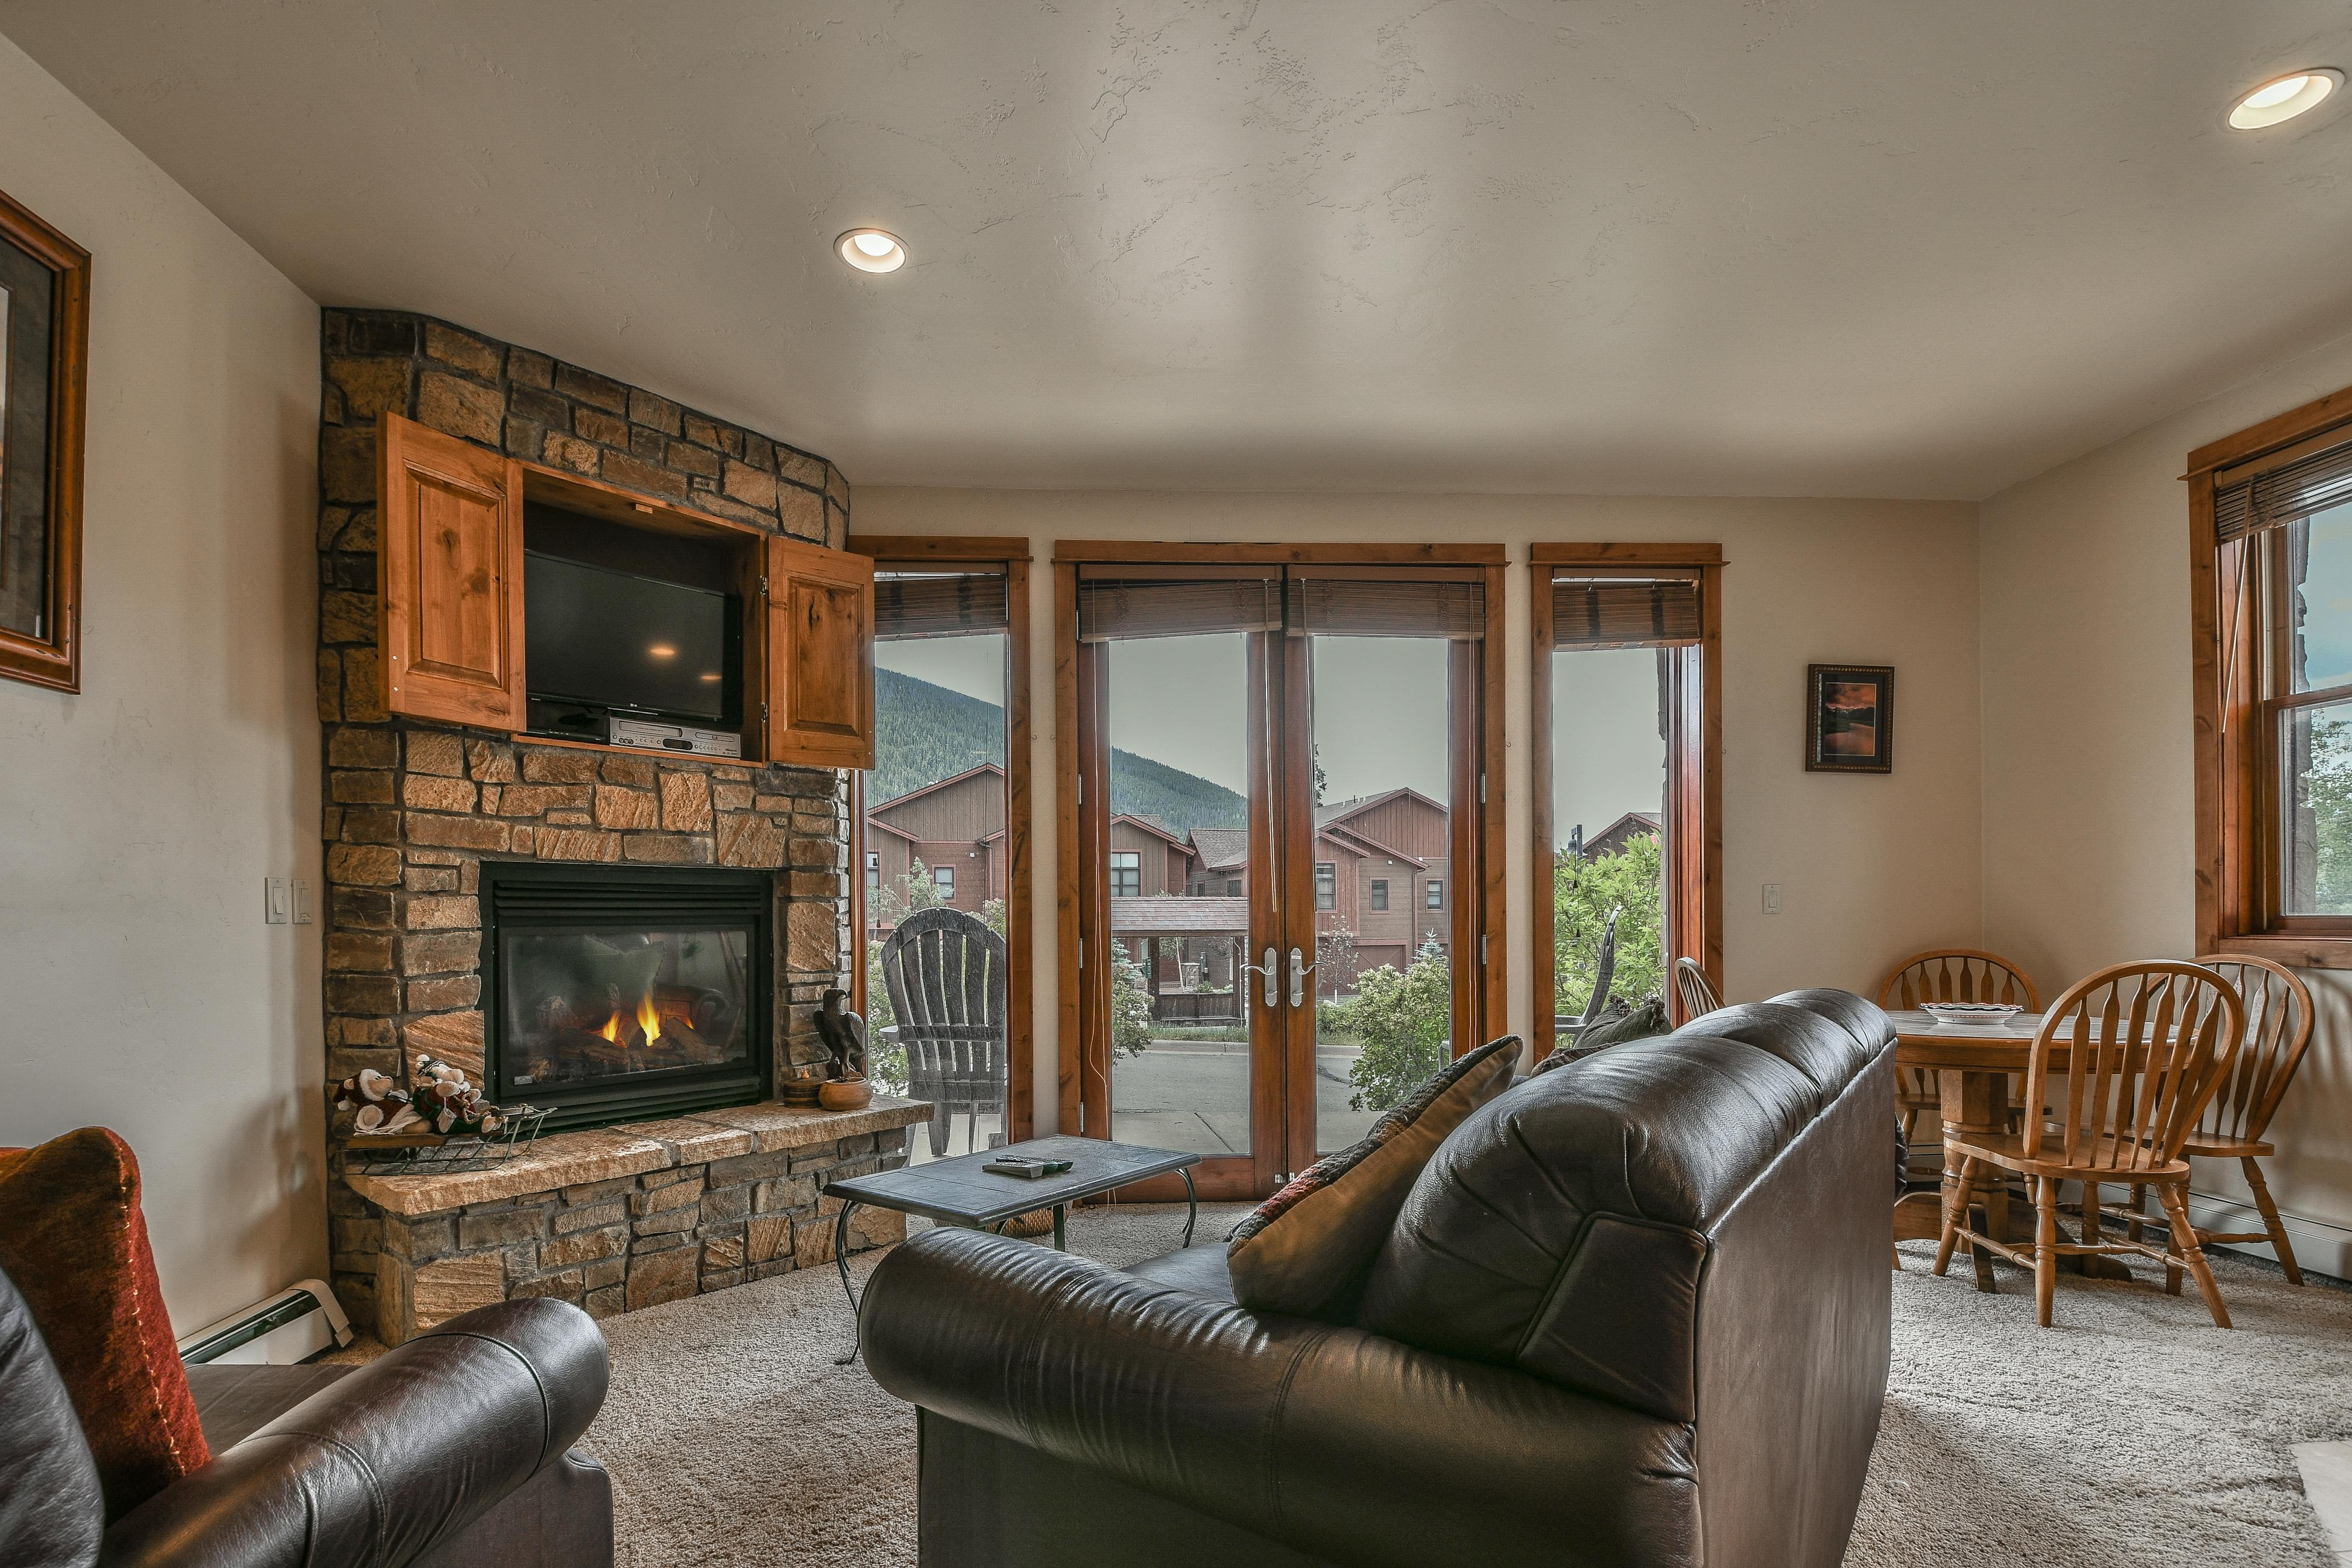 Updated Townhome in Secluded community with onsite Hot Tub